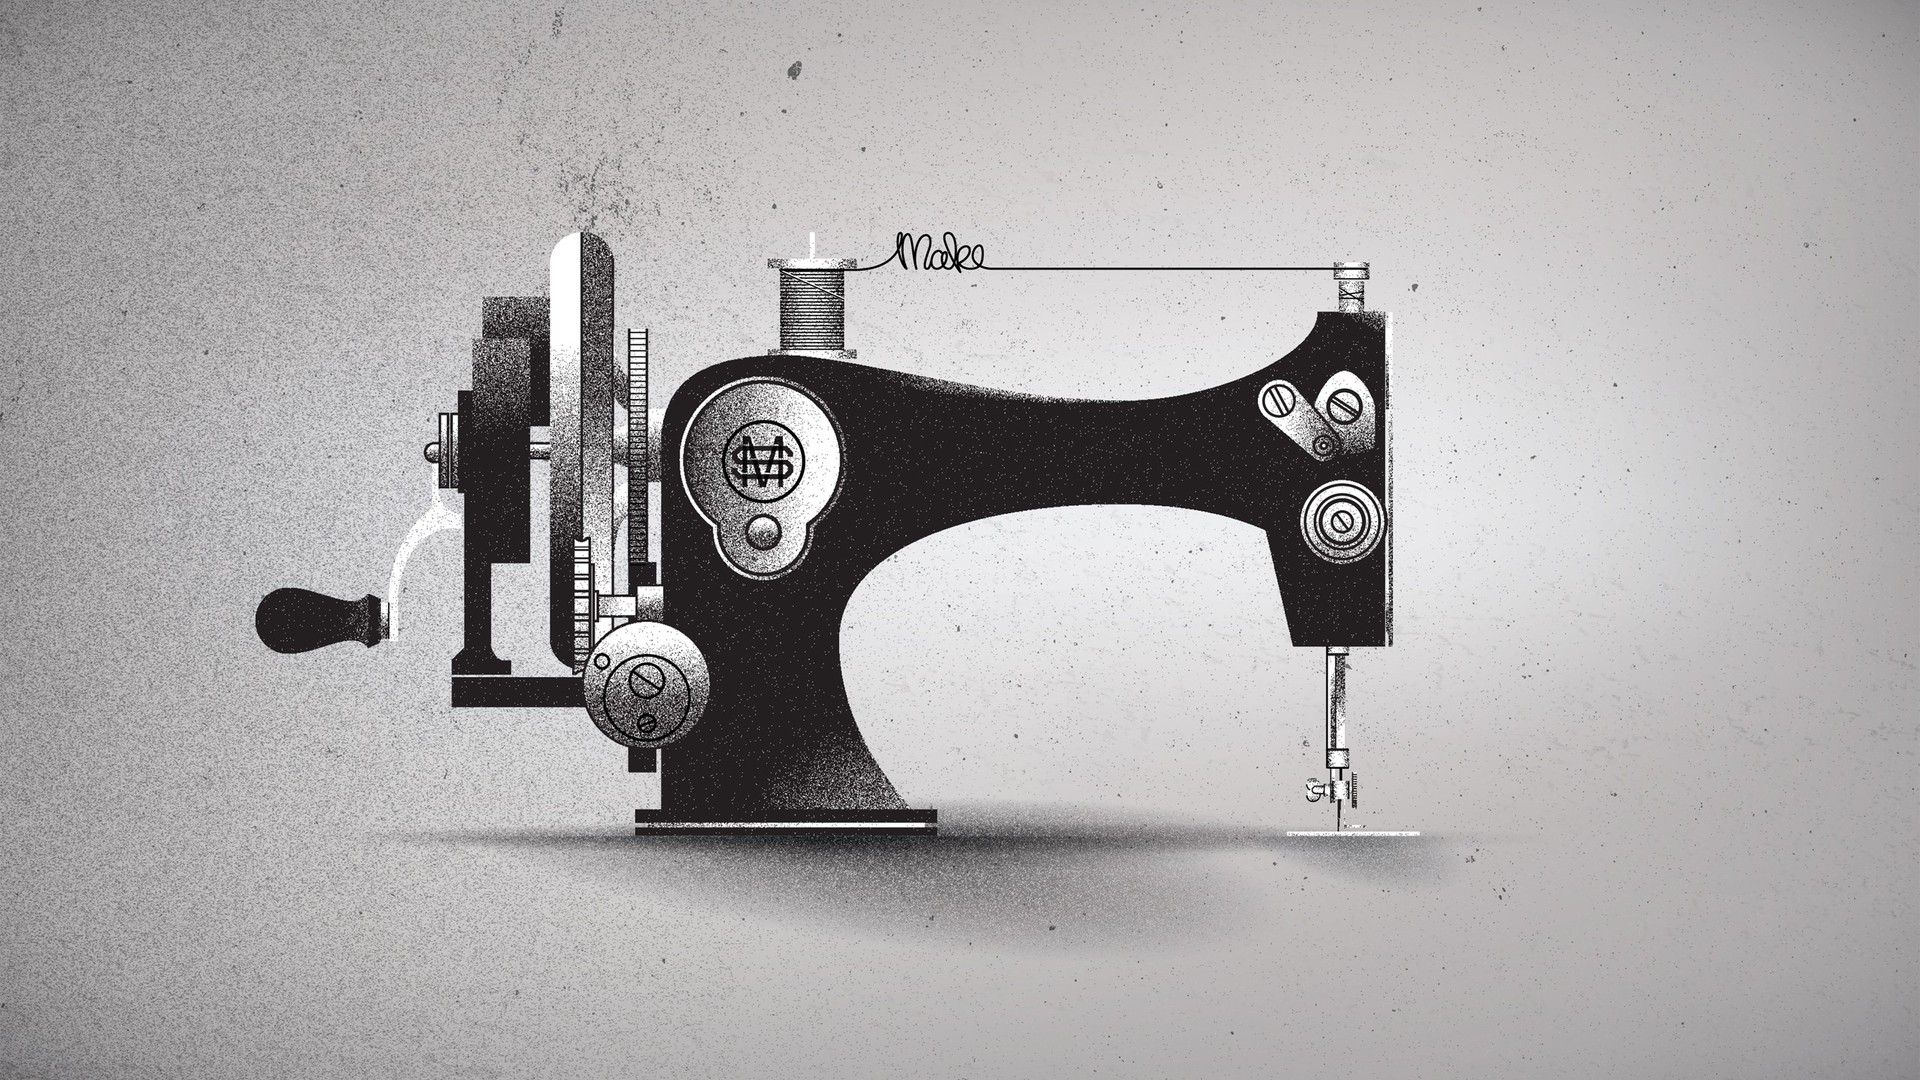 Sewing Machine clipart wallpaper #7